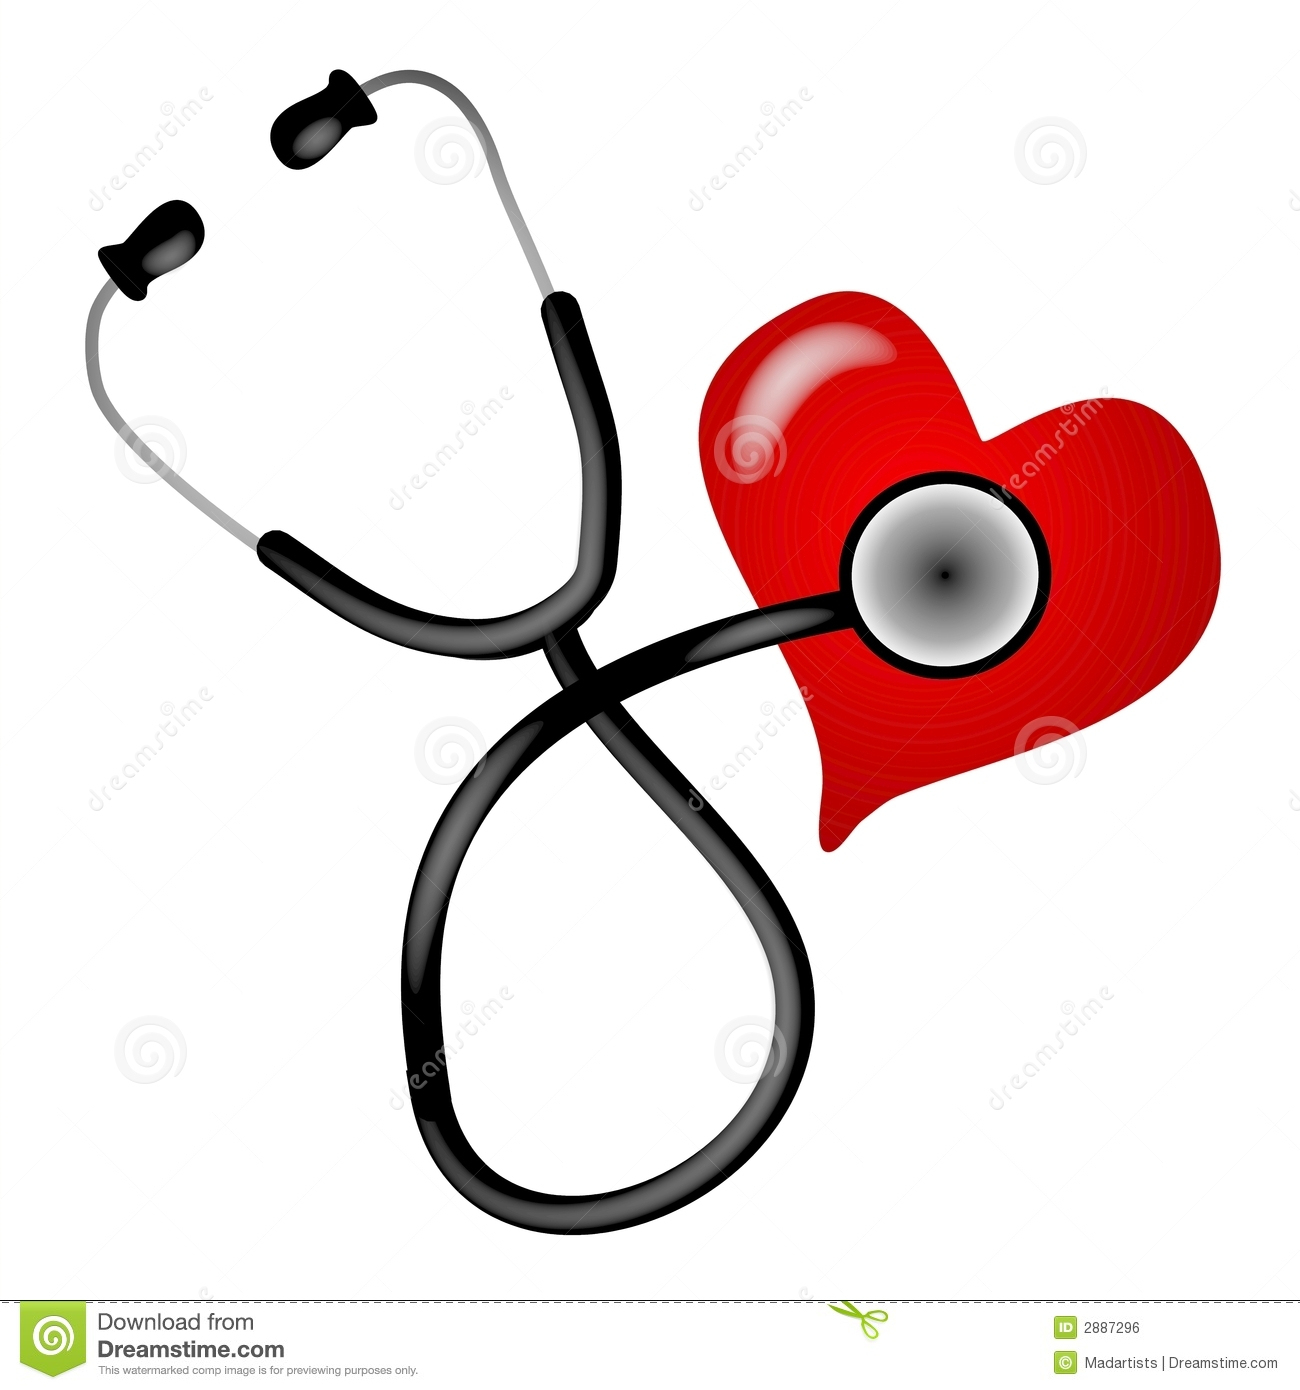 Illustration De Coeur De Stéthoscope Illustration Stock concernant Stéthoscope Dessin